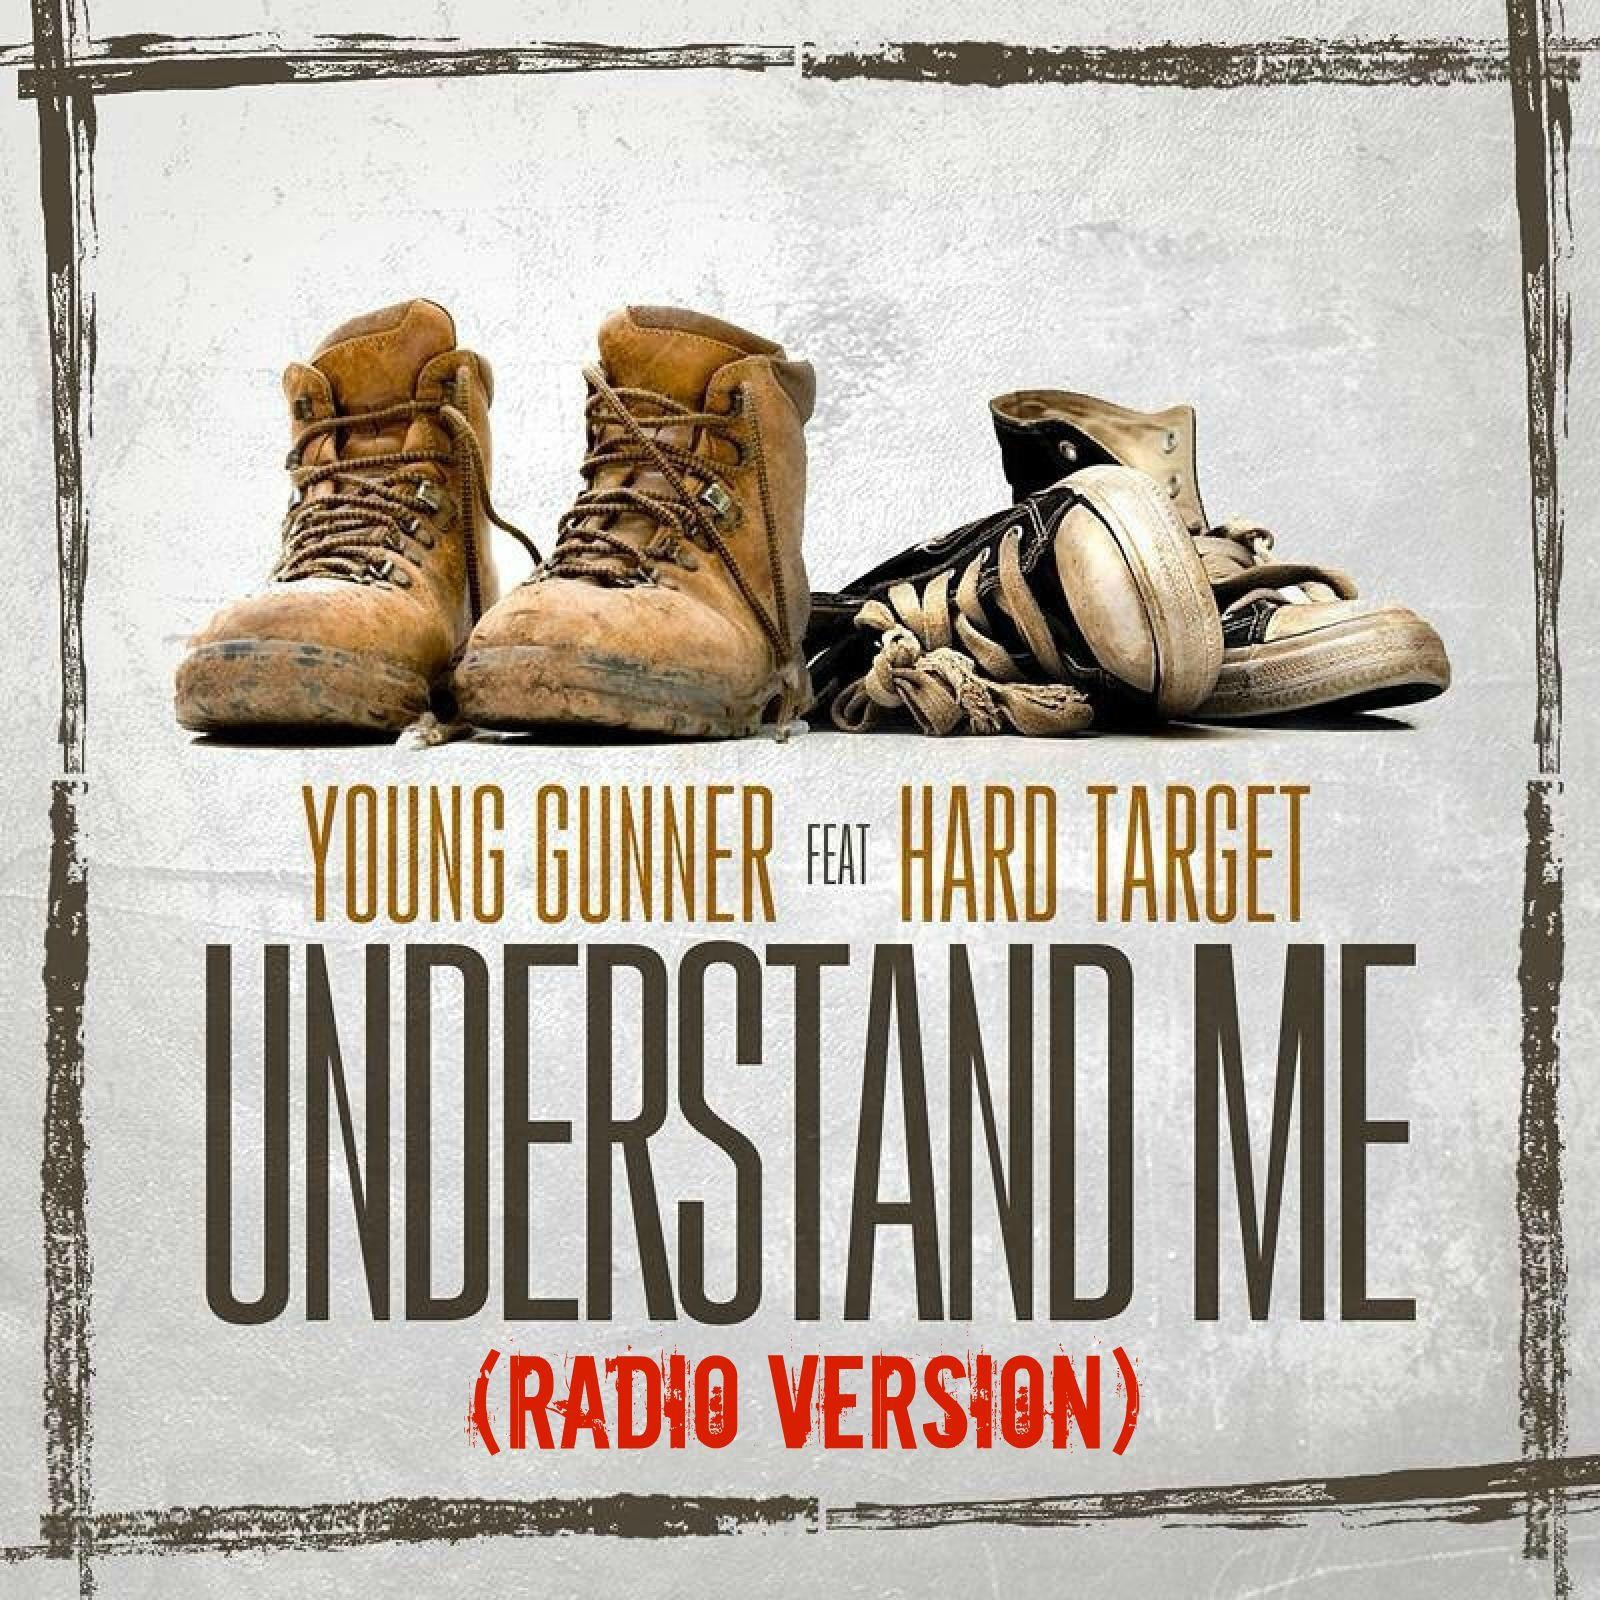 Understand Me (Radio Version) [feat. Hard Target] - Single